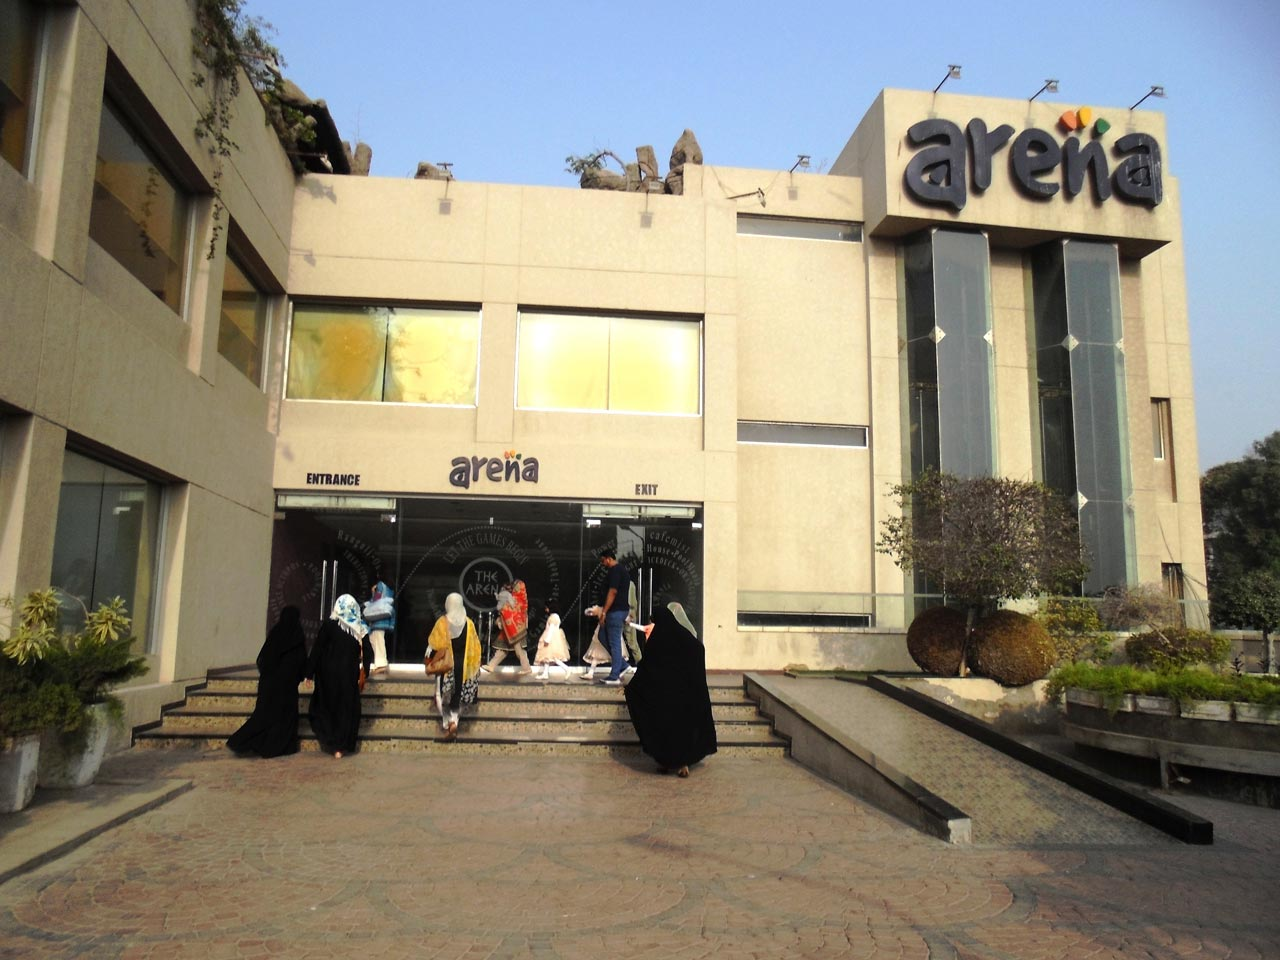 An outside view from Arena Club